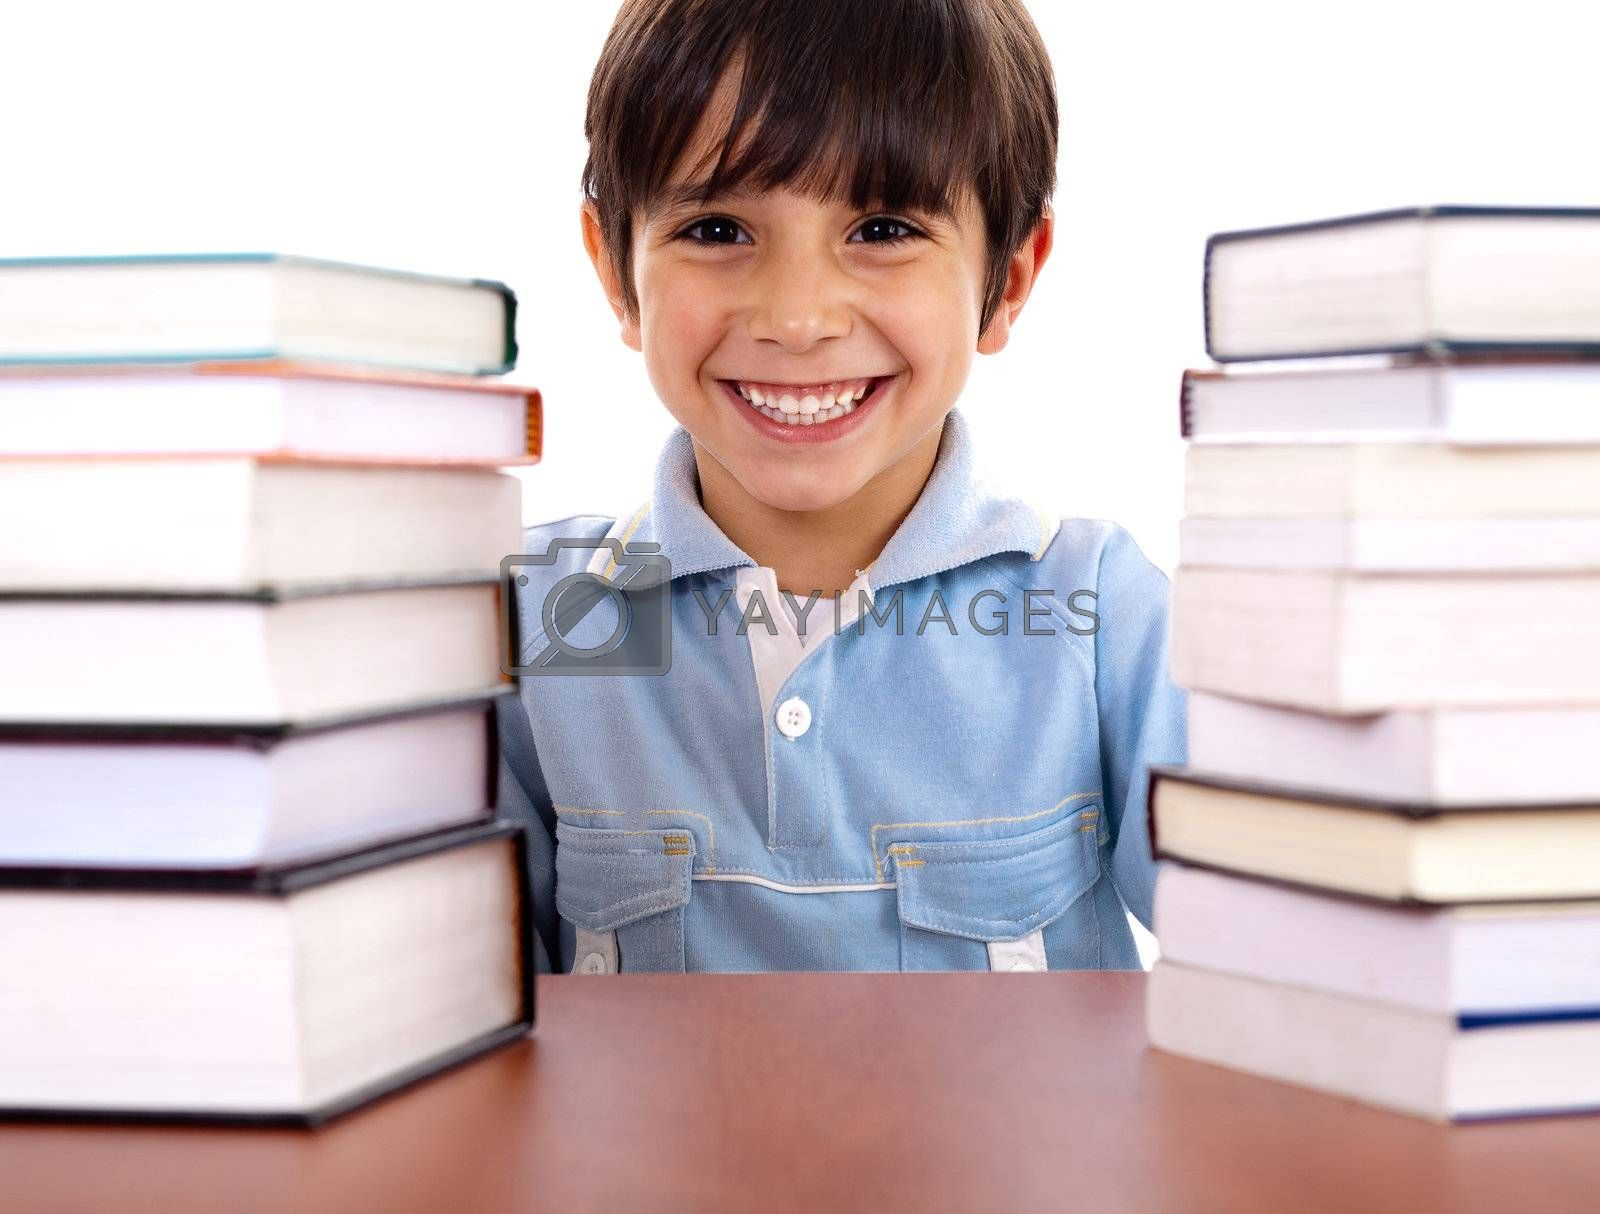 Smiling young school boy surrounded by books on white background